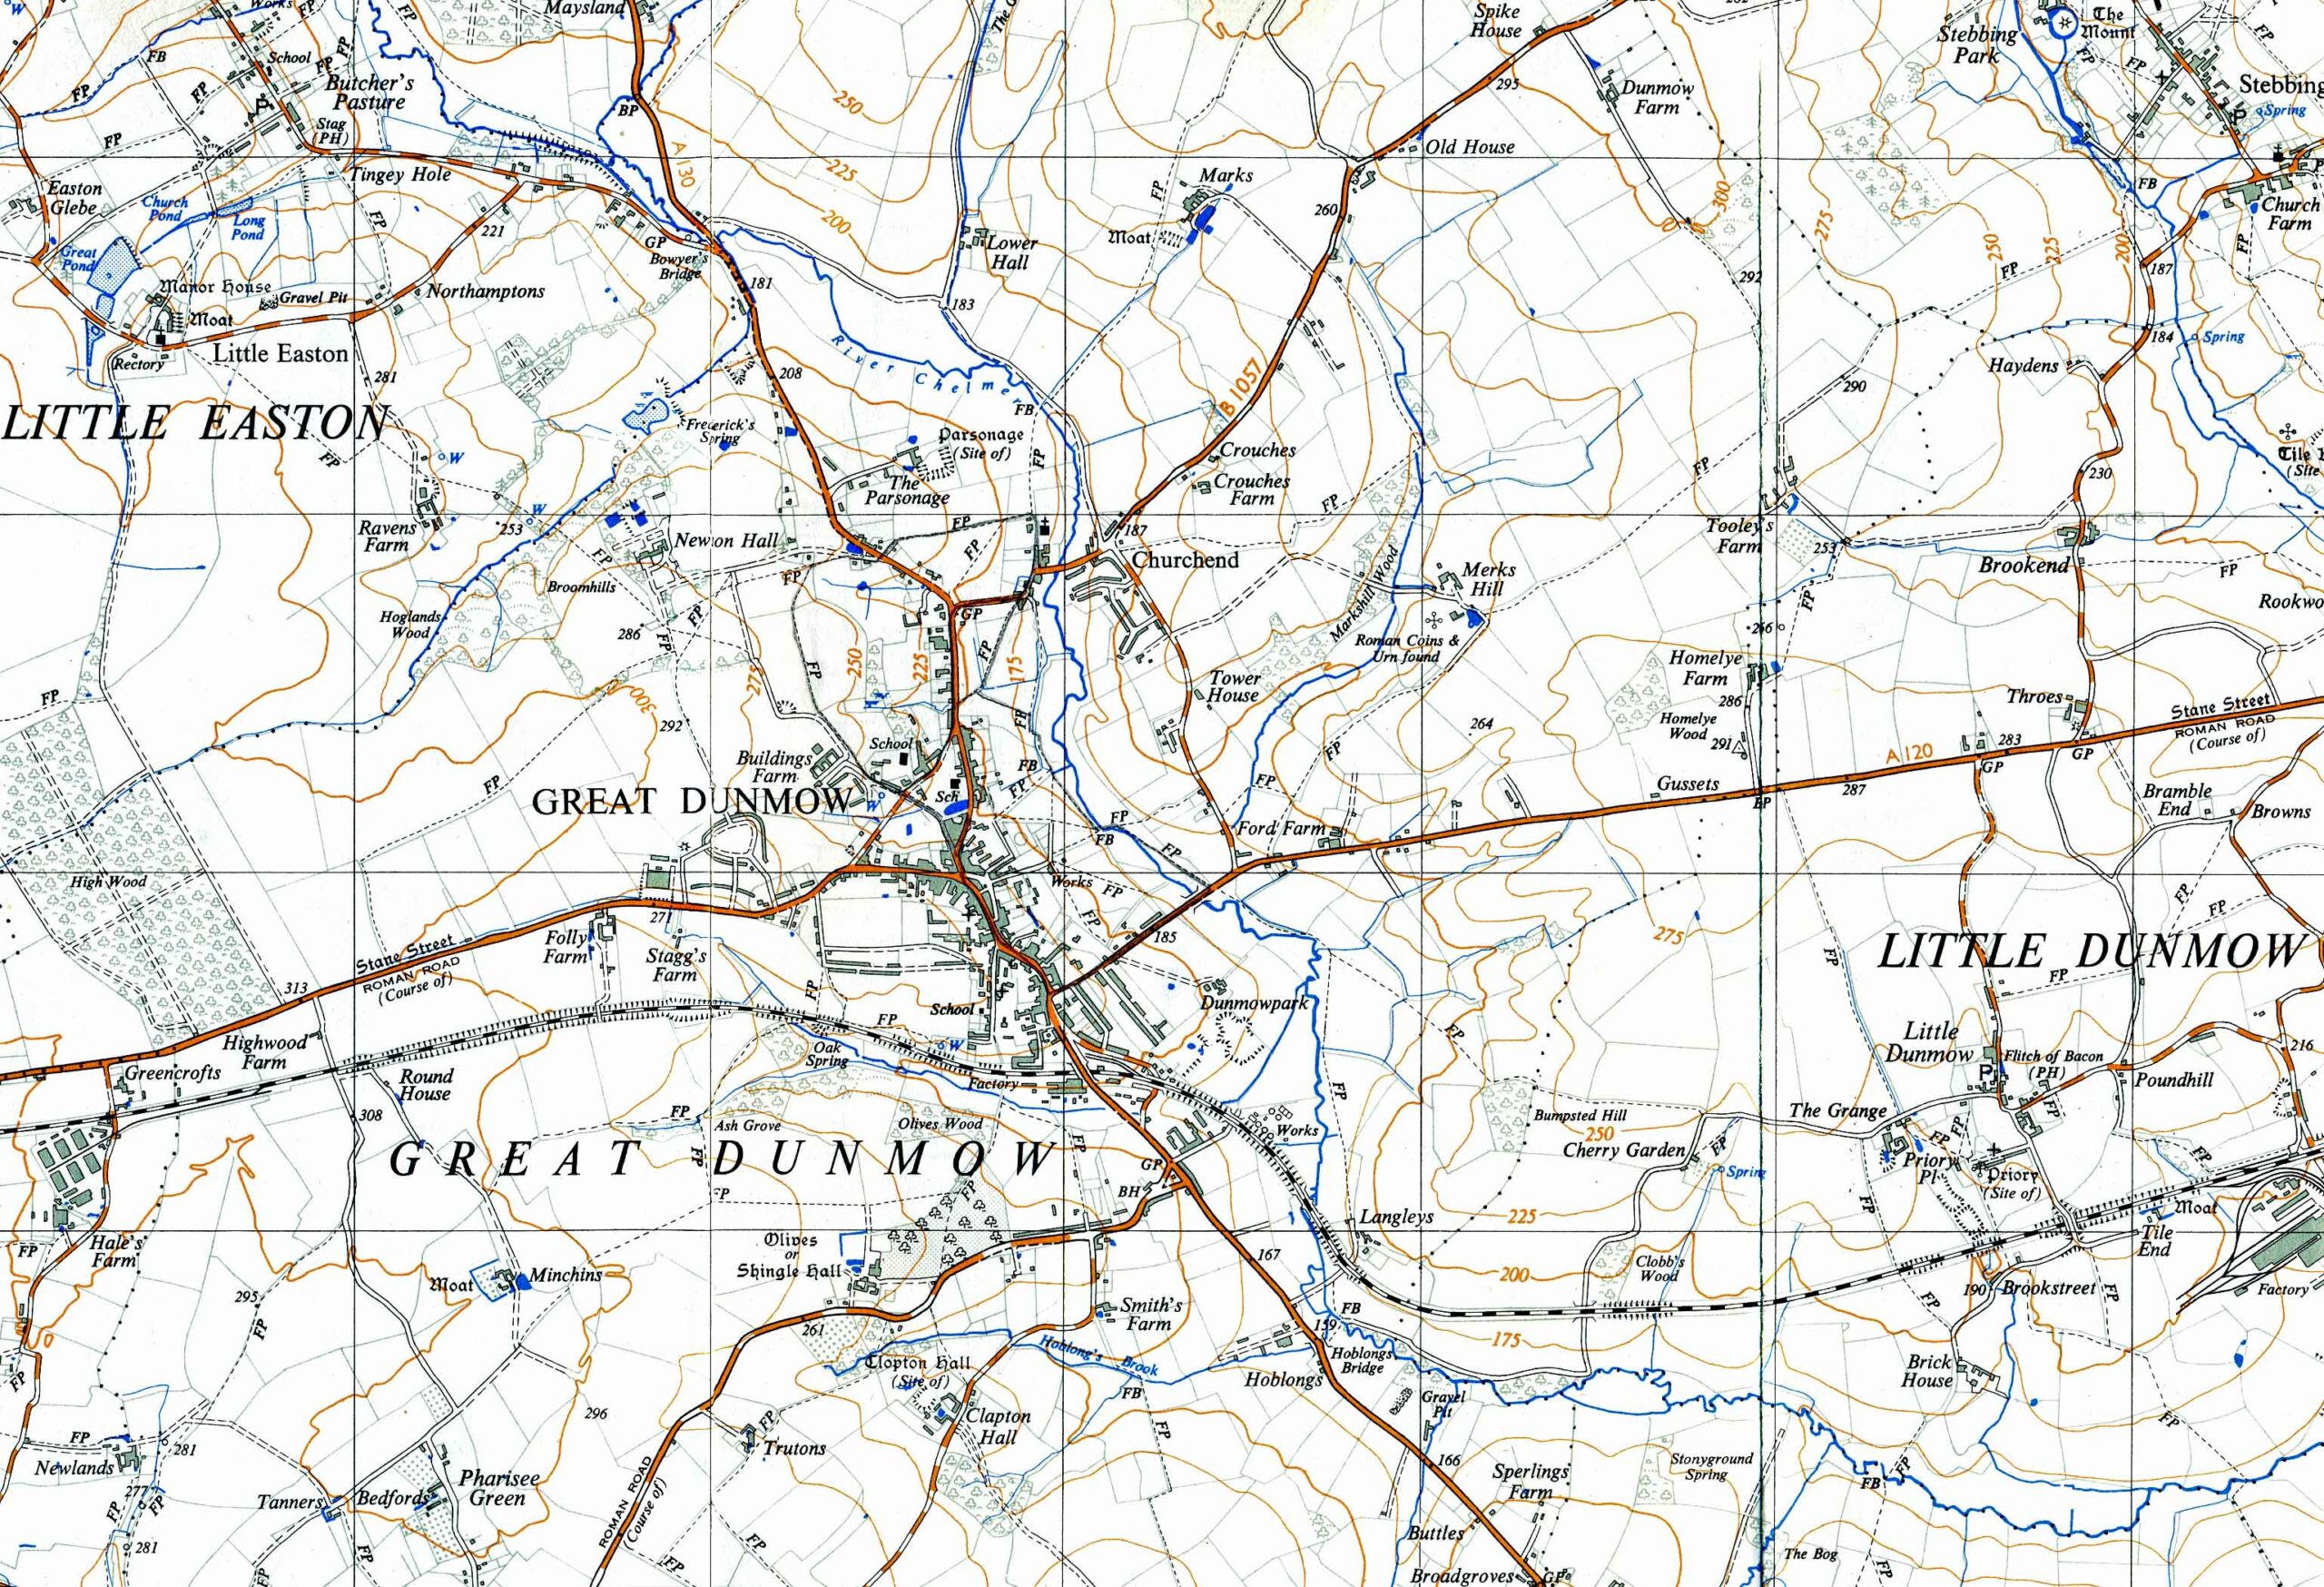 Dunmow, Great and Little. Ordnance Survey map extract.